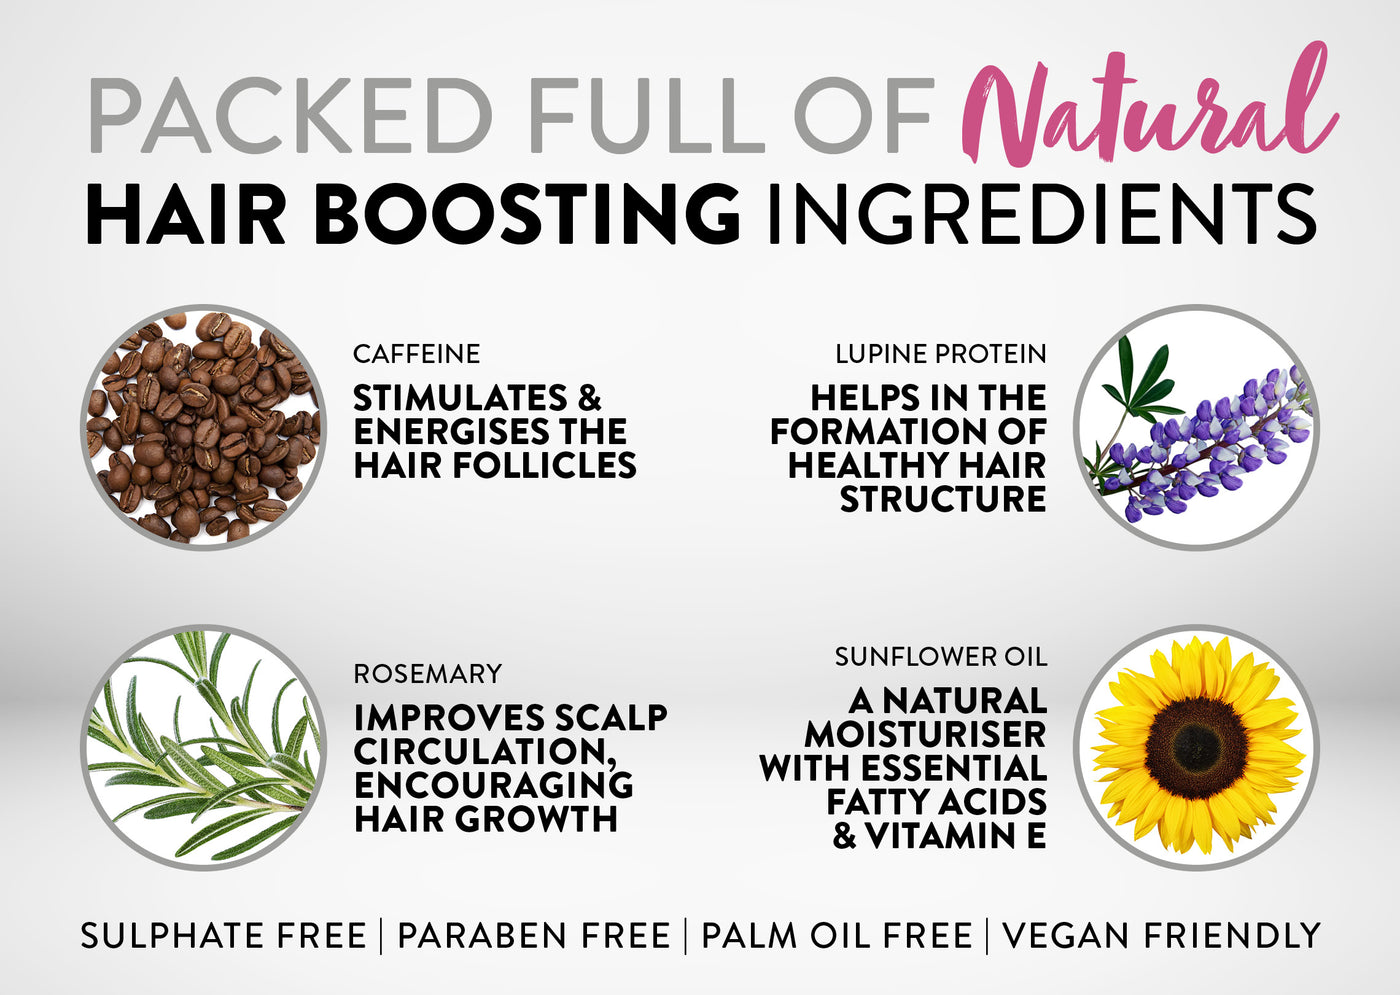 Packed full of Natural Hair boosting Ingredients